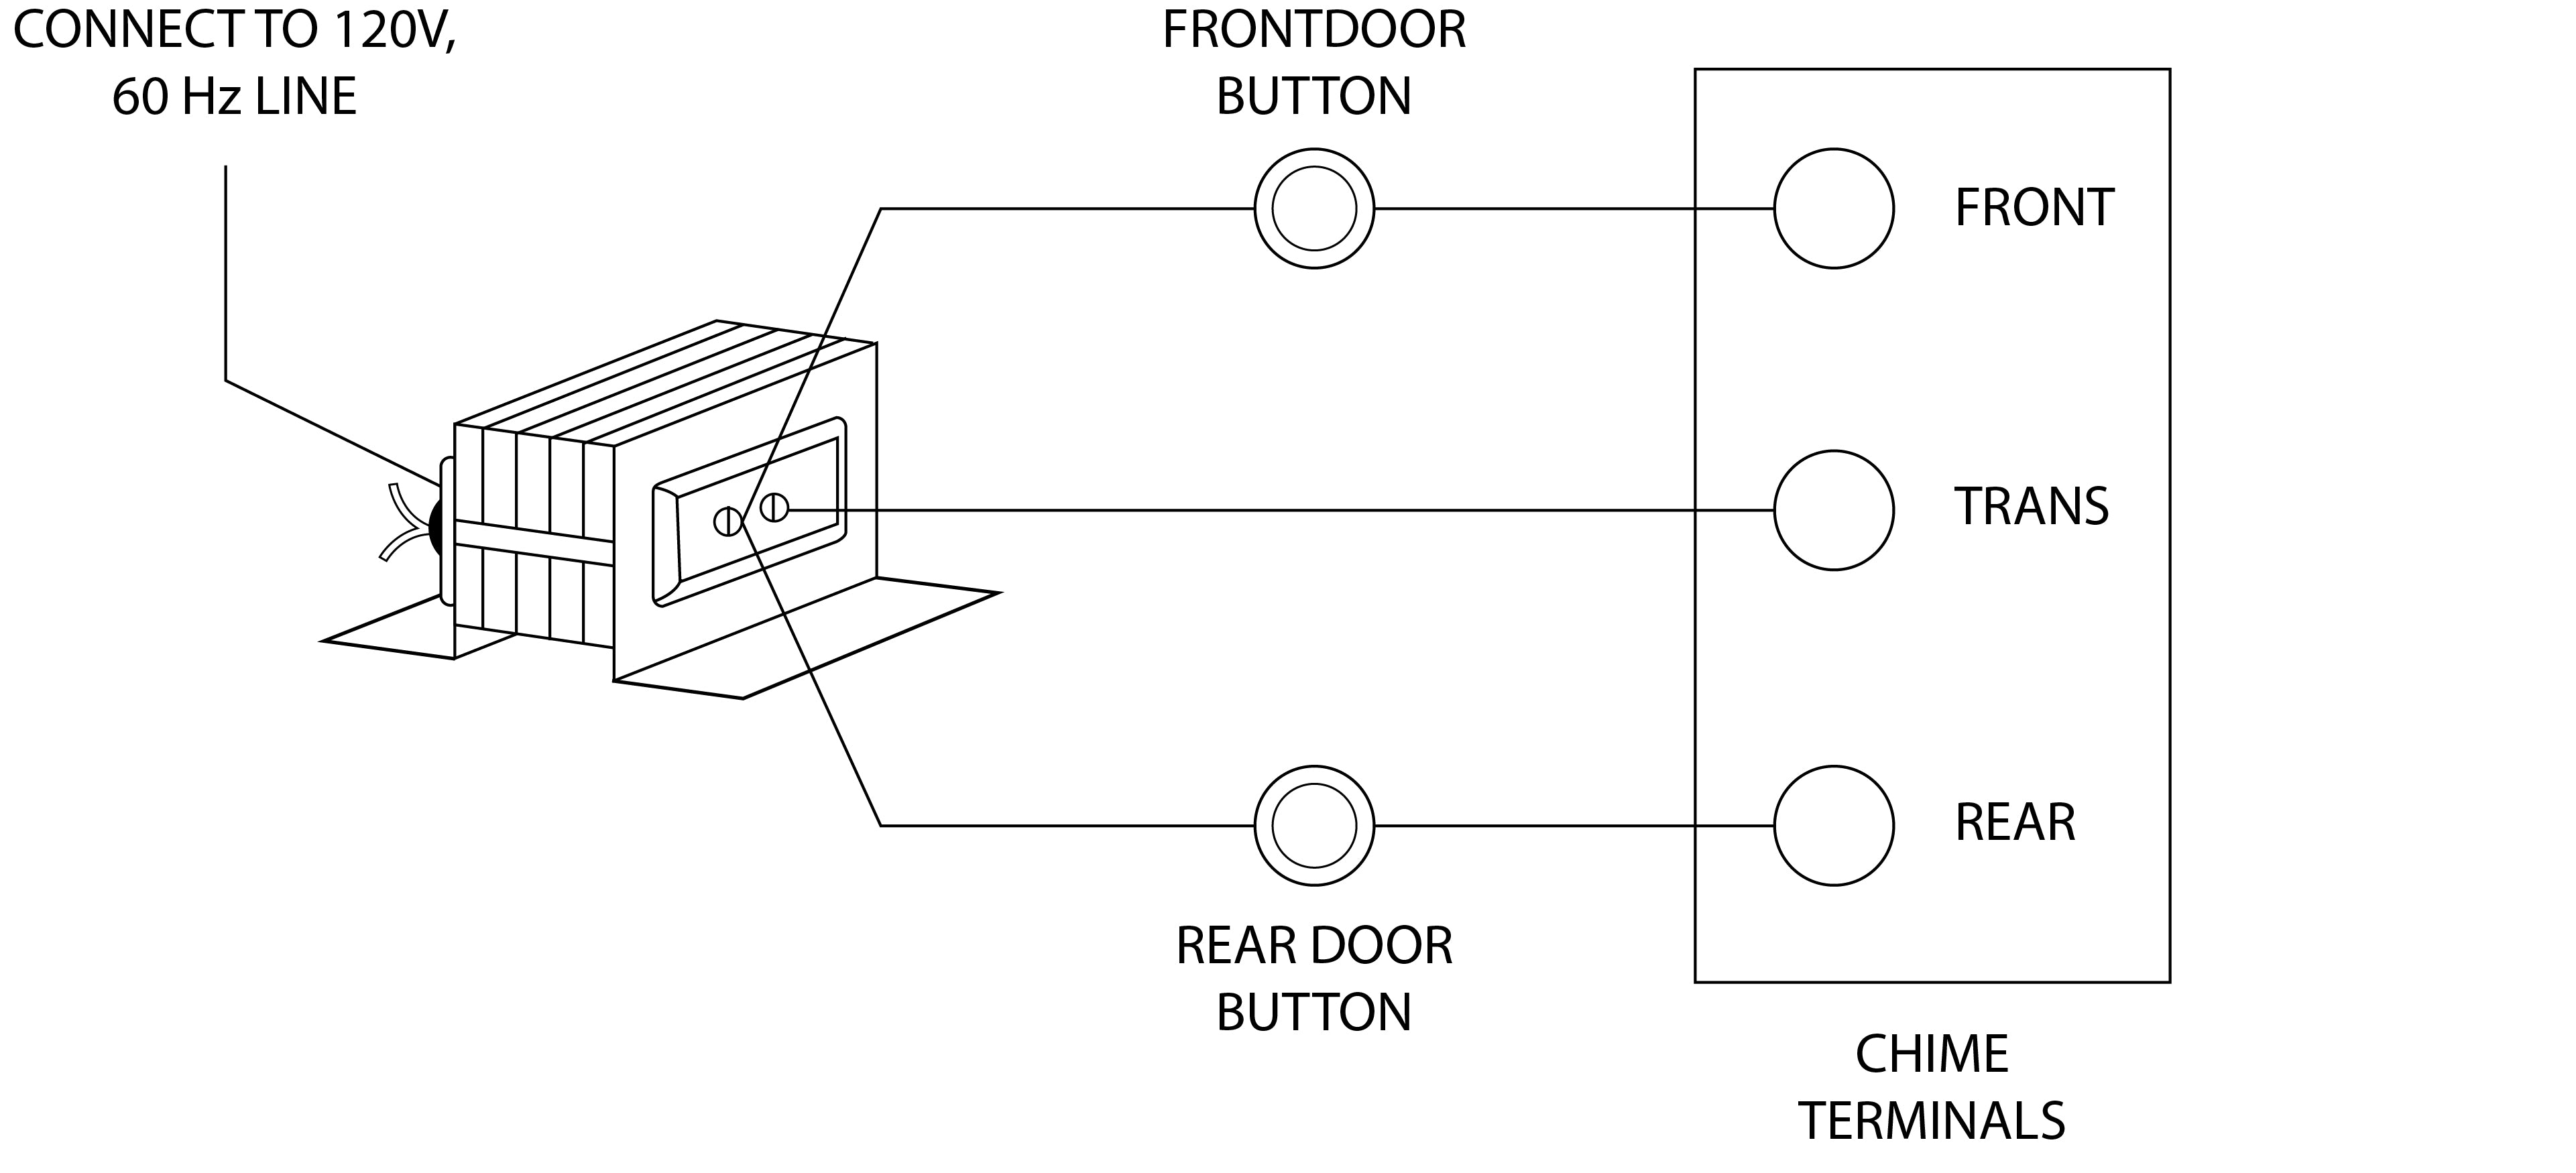 wiring diagram friedland doorbell wiring diagram doorbell schematic diagram Basic Electrical Wiring Diagrams at fashall.co